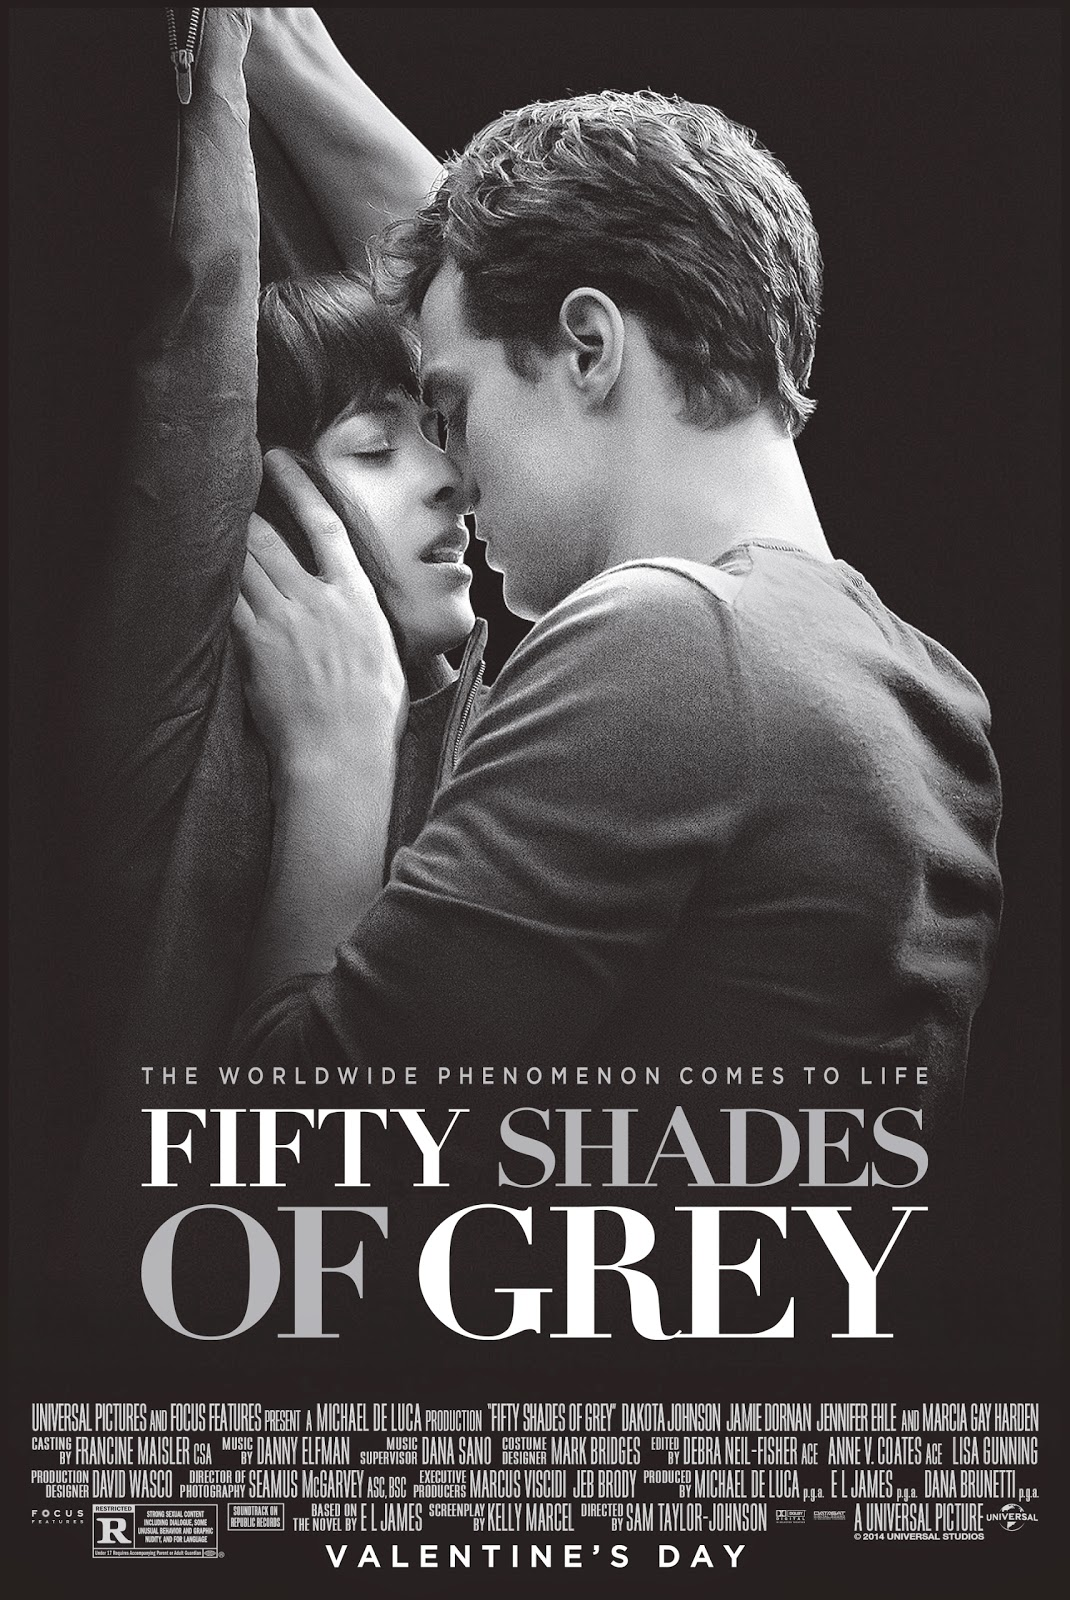 äHnliche Filme Wie Fifty Shades Of Gray